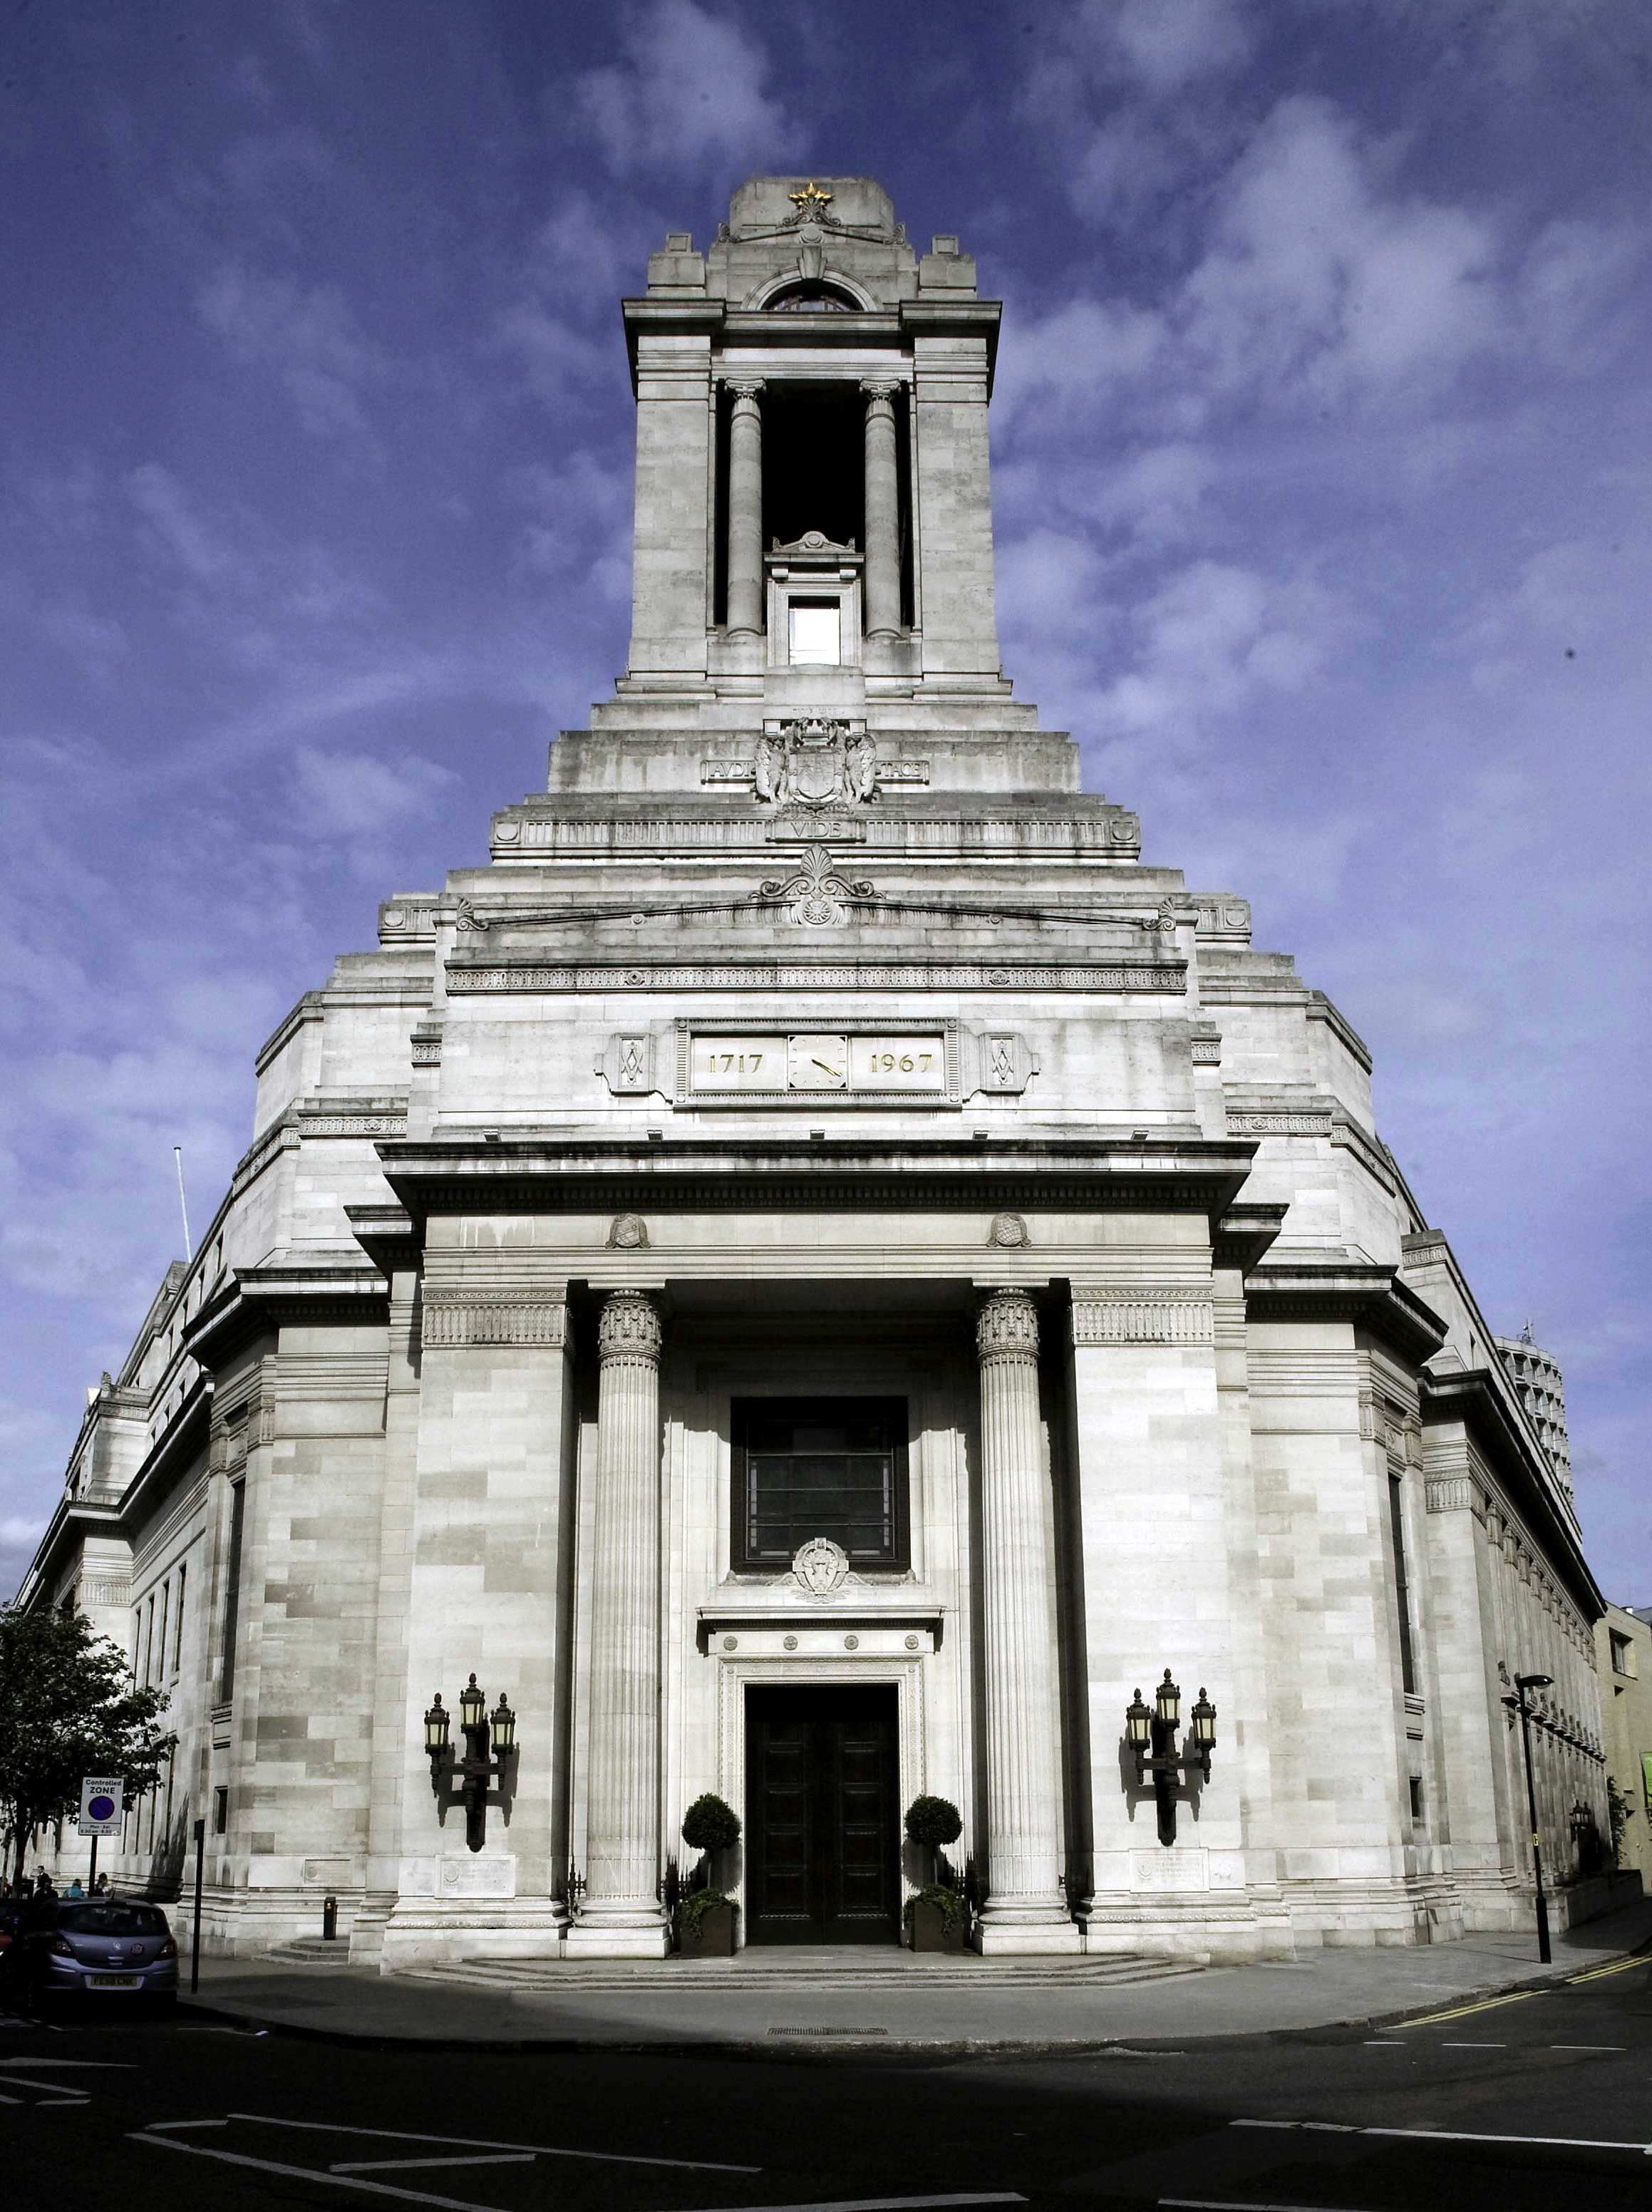 Freemasons%27 Hall%2c Covent Garden%2c London.jpg